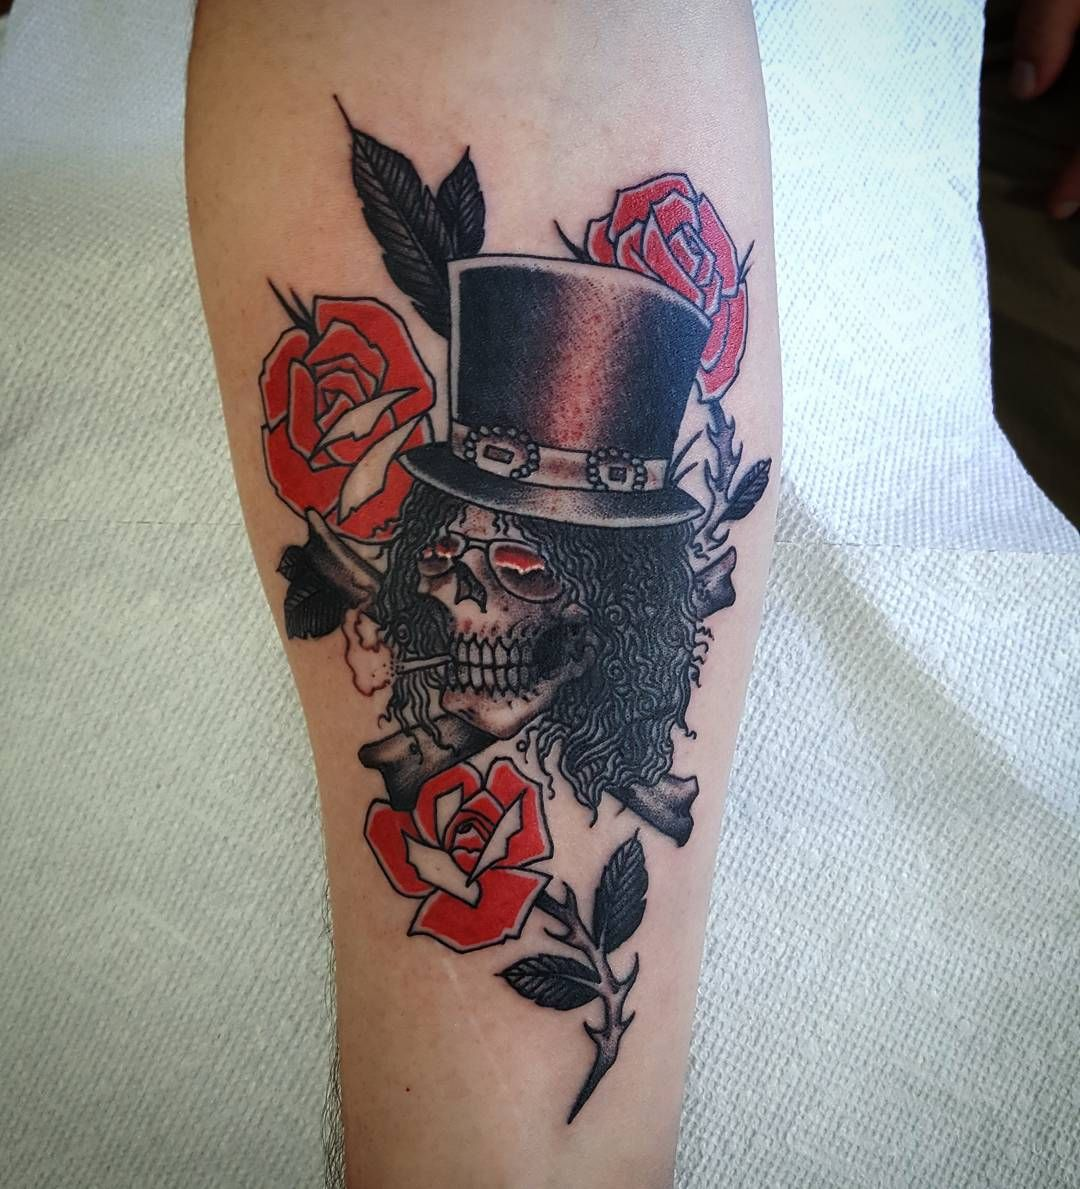 Tattoo Removal Reddit Vancouver